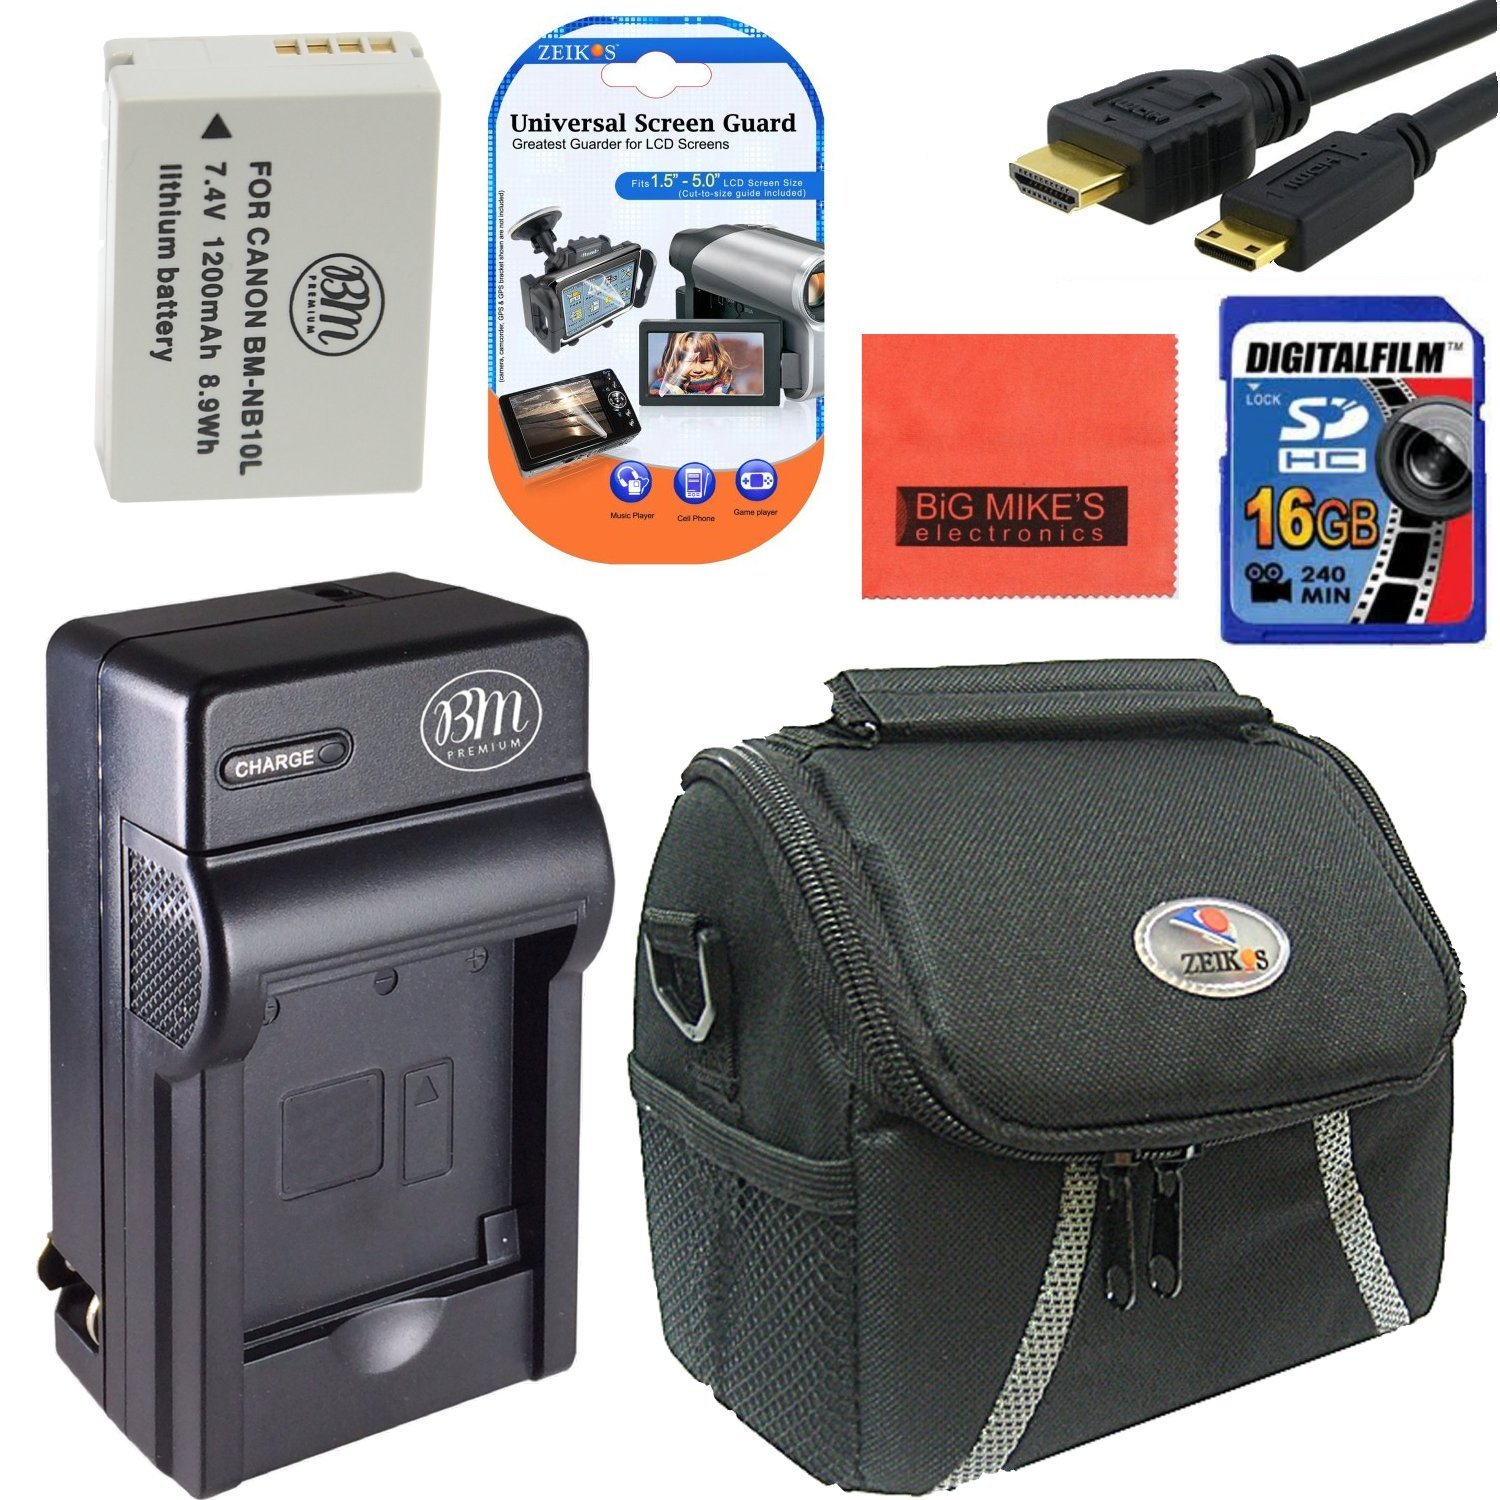 Starter Accessory Kit for Canon PowerShot G1 X, G3-X, G15, G16, SX40 HS, SX50 HS, SX60 HS Digital Camera - Includes NB10L Battery & Charger + 16GB SD Memory Card+ Deluxe Carrying Case + Mini HDMI-HDMI Cable +More!!